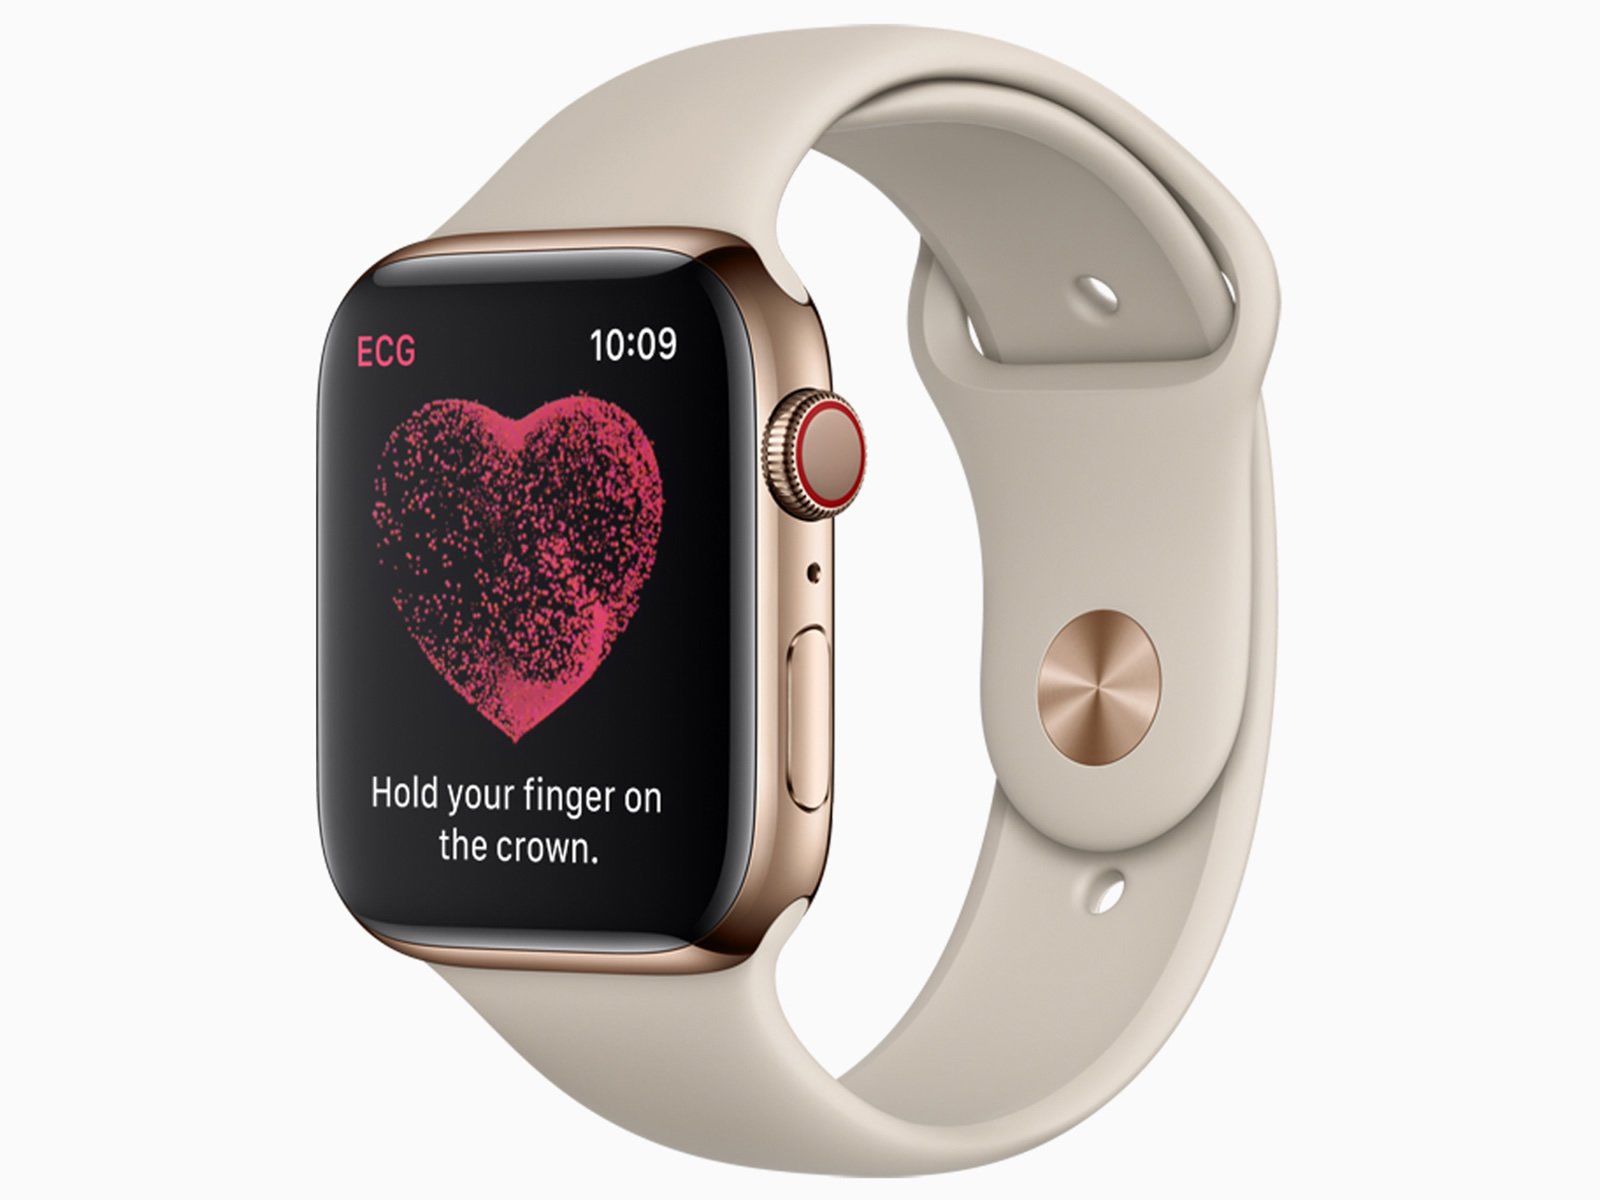 apple-watch-series-4-9-.jpg